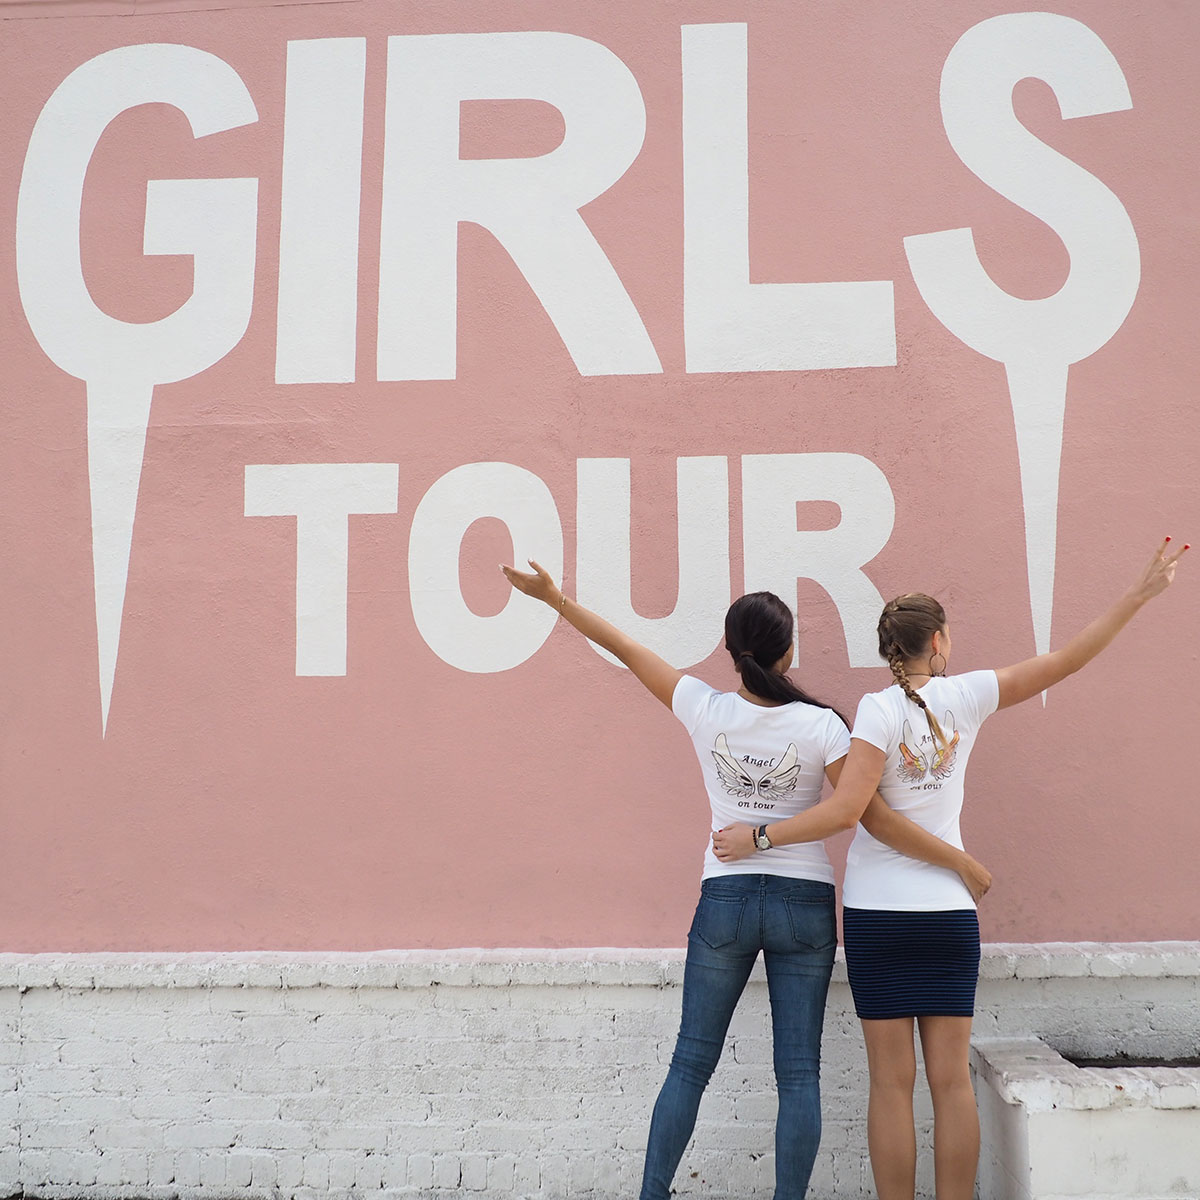 girlstour-wall-melrose-avenue-los-angeles